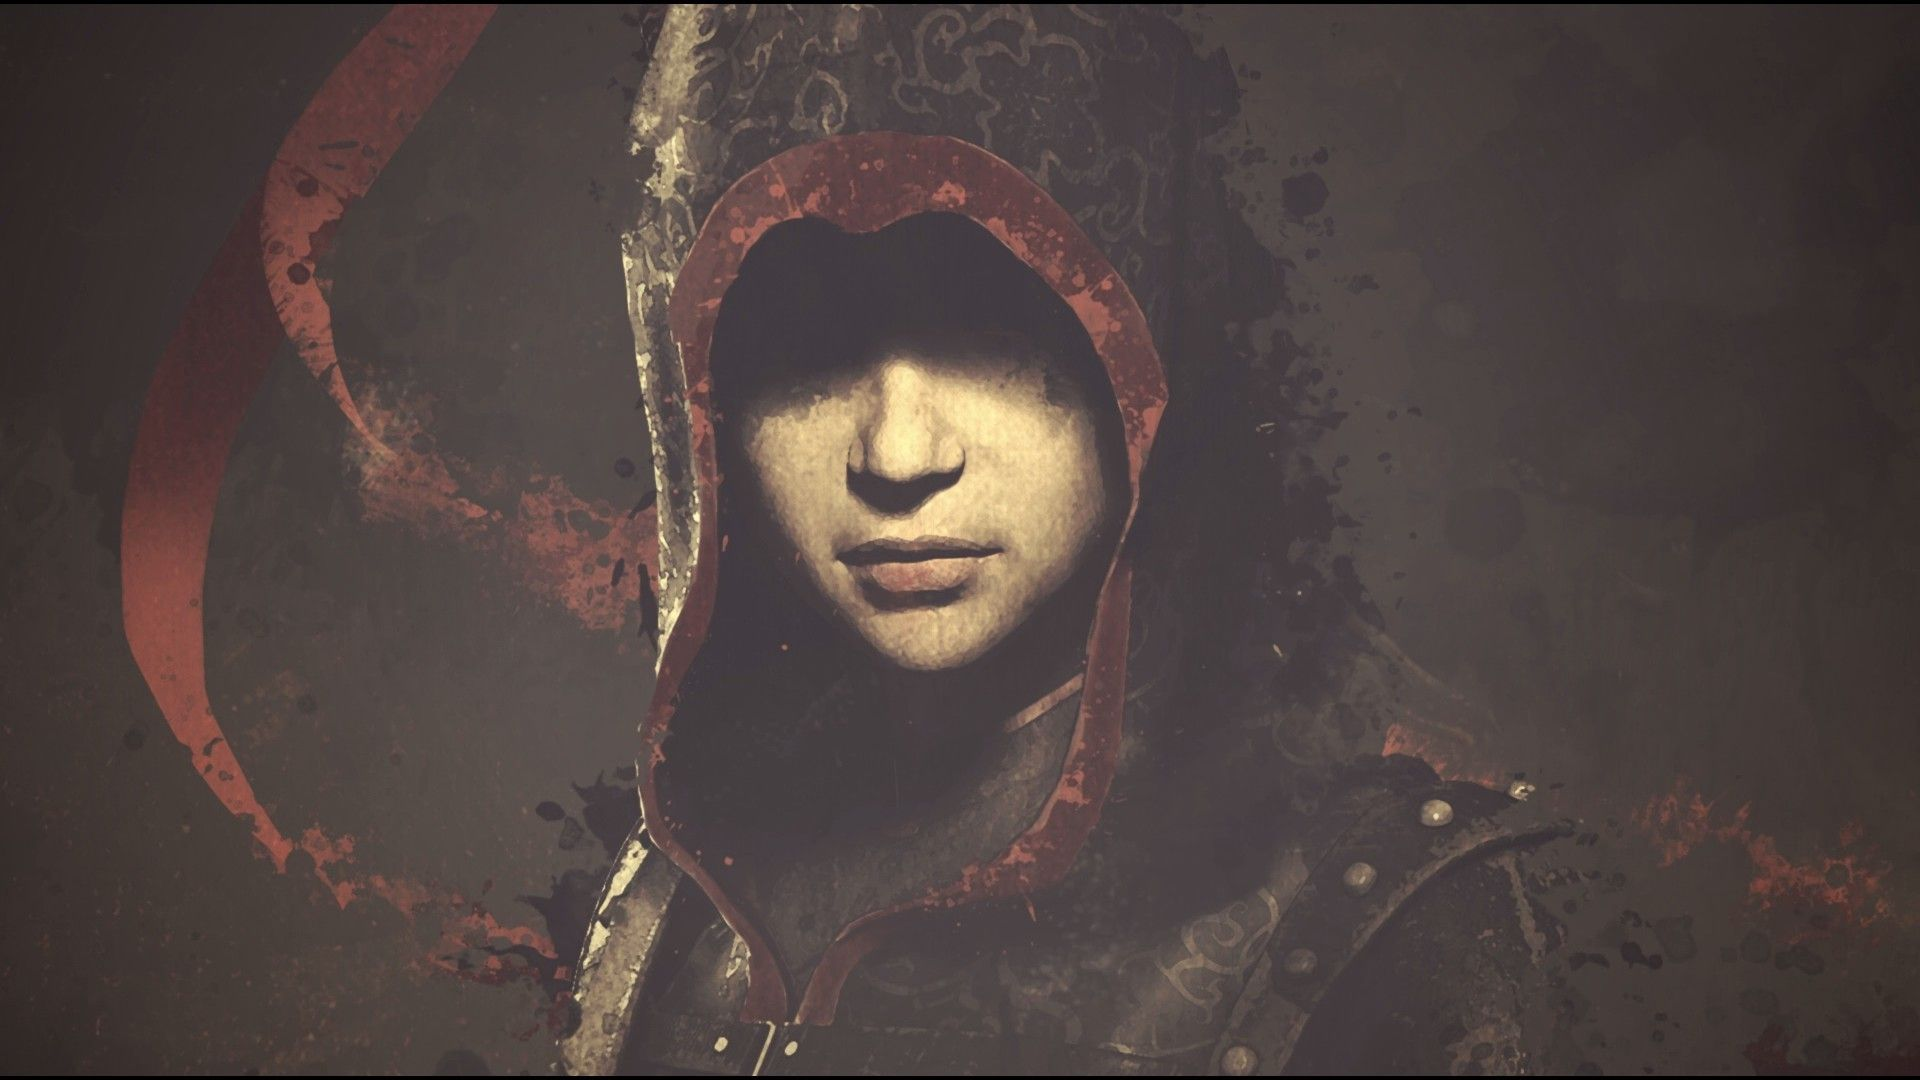 Download Wallpaper Chinese Order Assassin S Creed Shao Yun